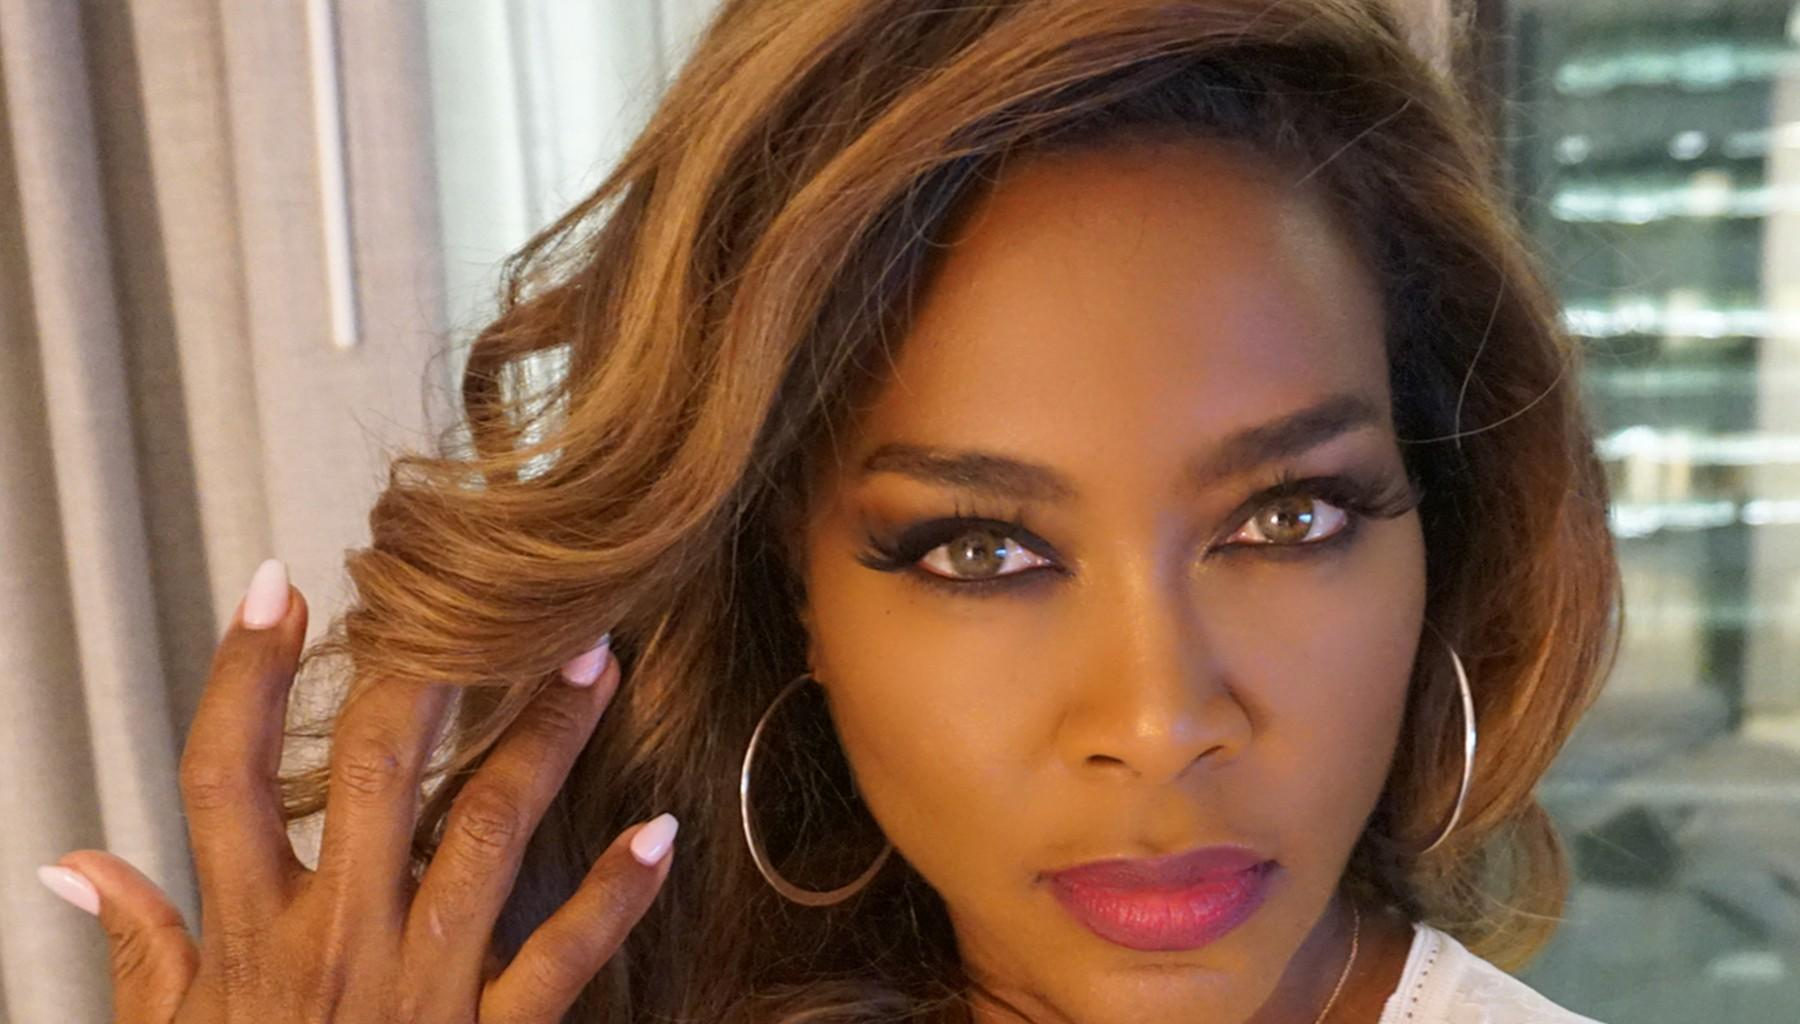 Kenya Moore Brings A Bit Of Sunshine To Lake Bailey - See The Gorgeous Photo